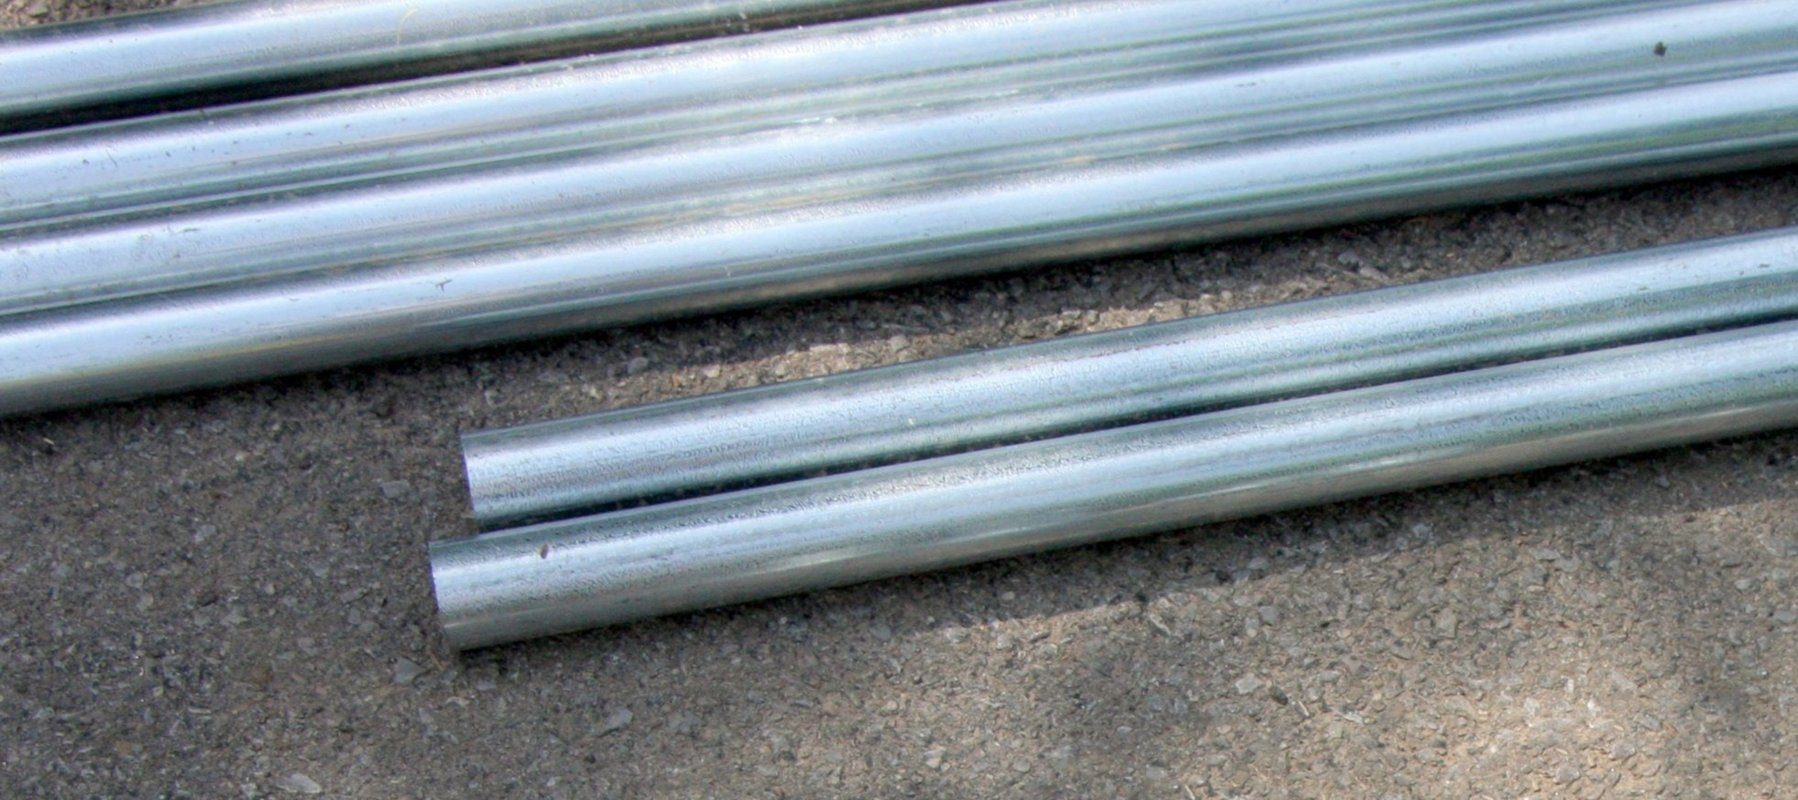 aluminium and steel tubing